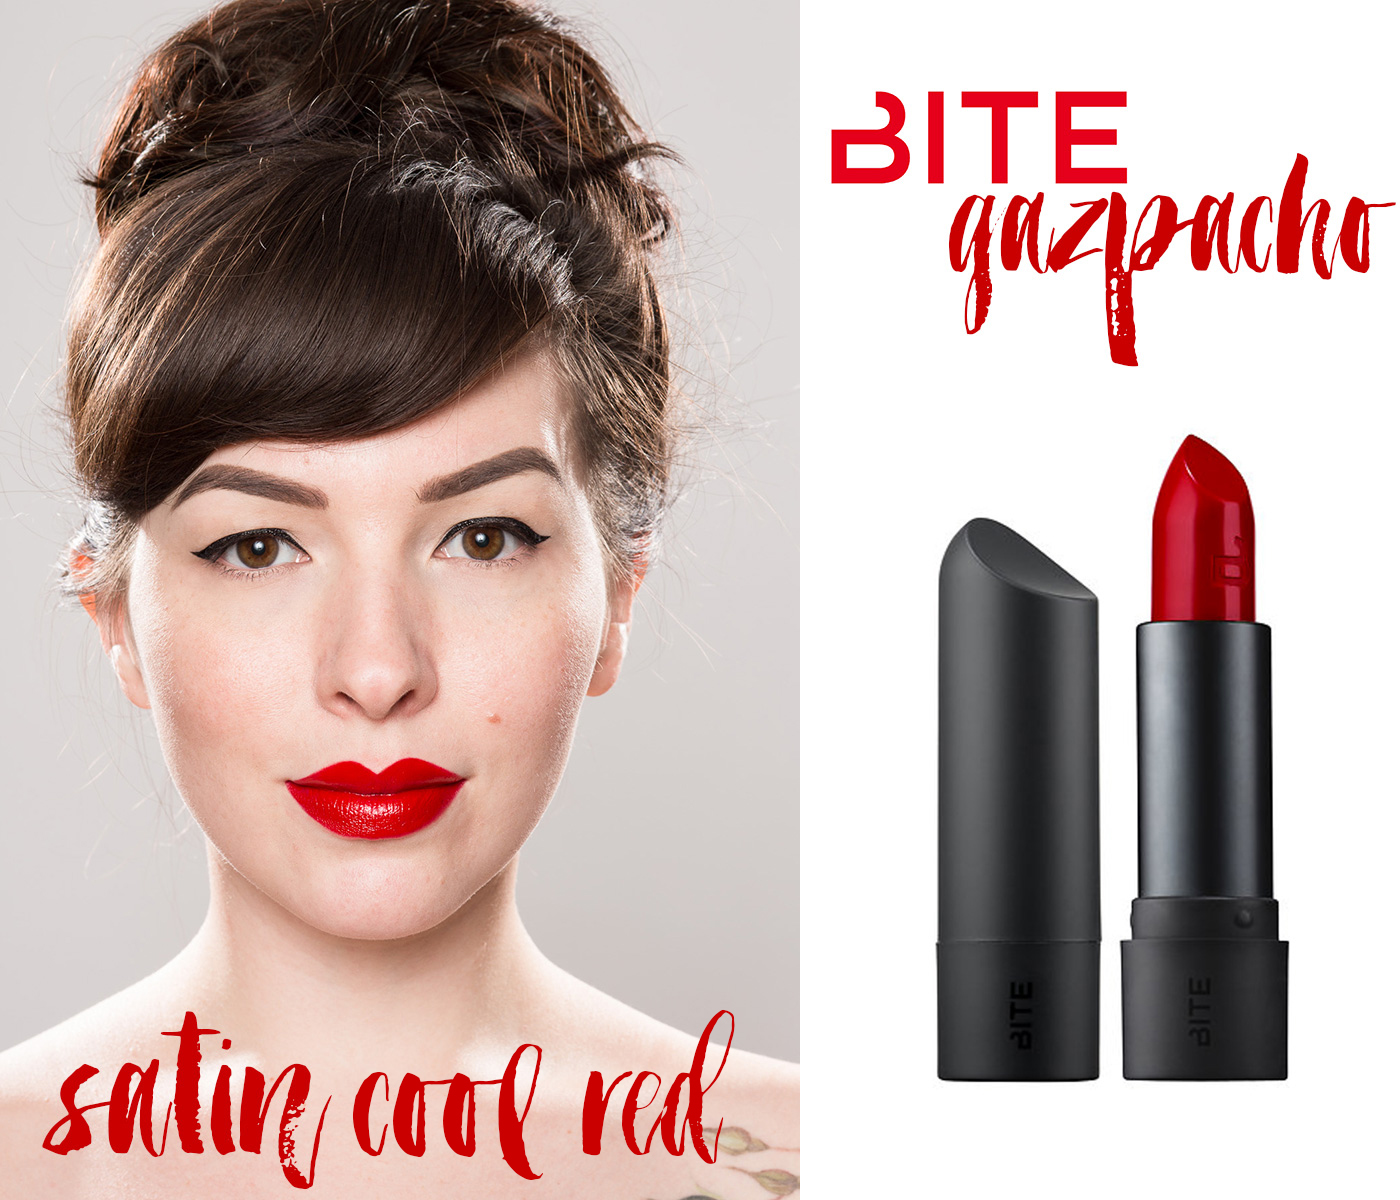 finding the perfect red lipstick: bite beauty red lipstick gazpacho